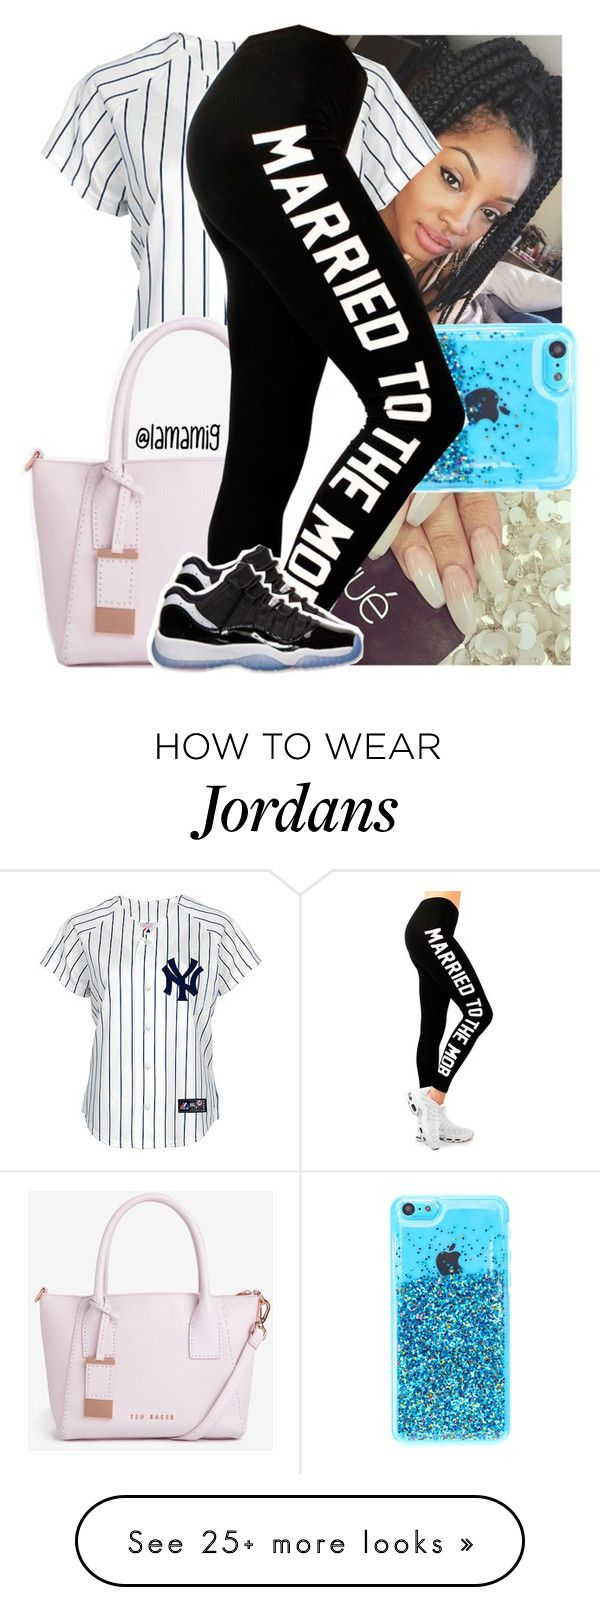 """whip my hair~willow smith"" by lamamig on Polyvore featuring Ted Baker, Married to the Mob, Retrò, women's clothing, women, female, woman, misses and juniors"